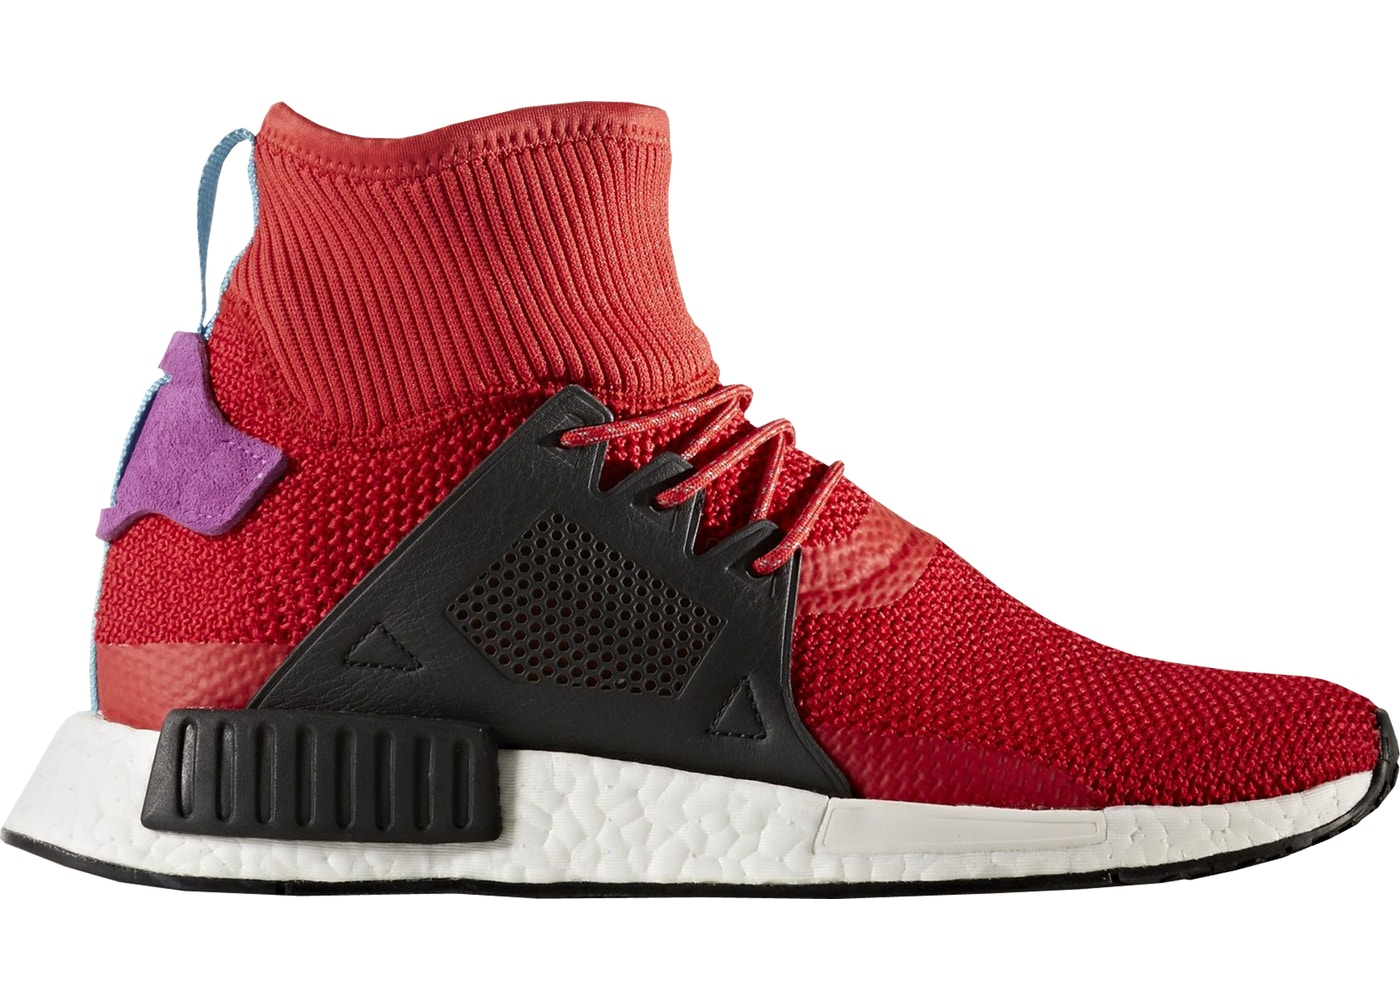 7ad06399f0132 adidas NMD XR1 Adventure Pack Scarlet - BZ0632